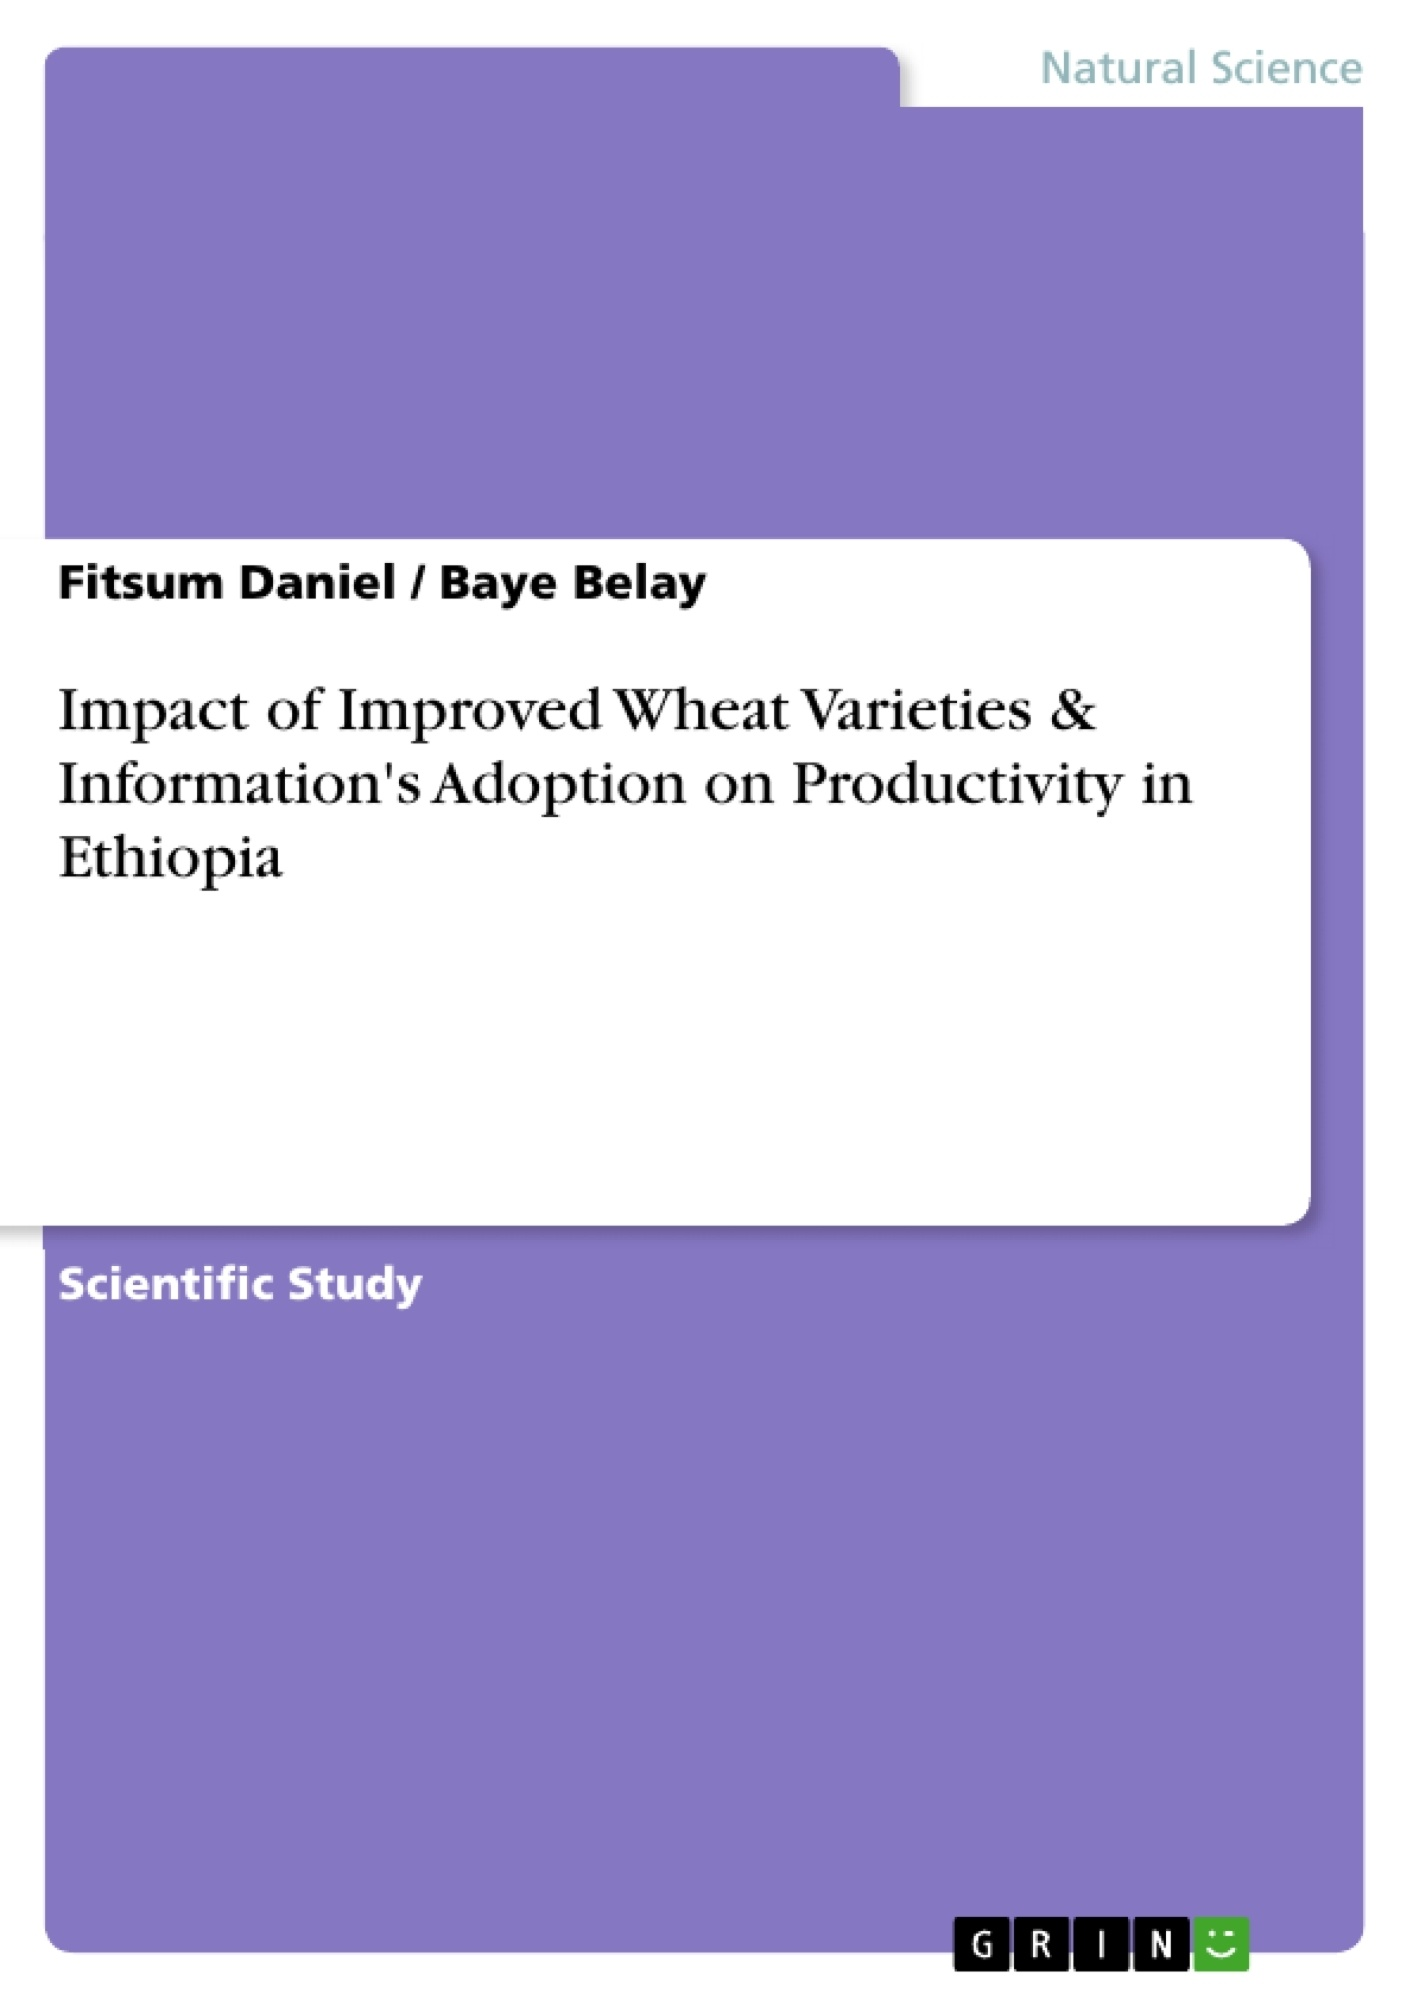 Title: Impact of Improved Wheat Varieties & Information's Adoption on Productivity in Ethiopia